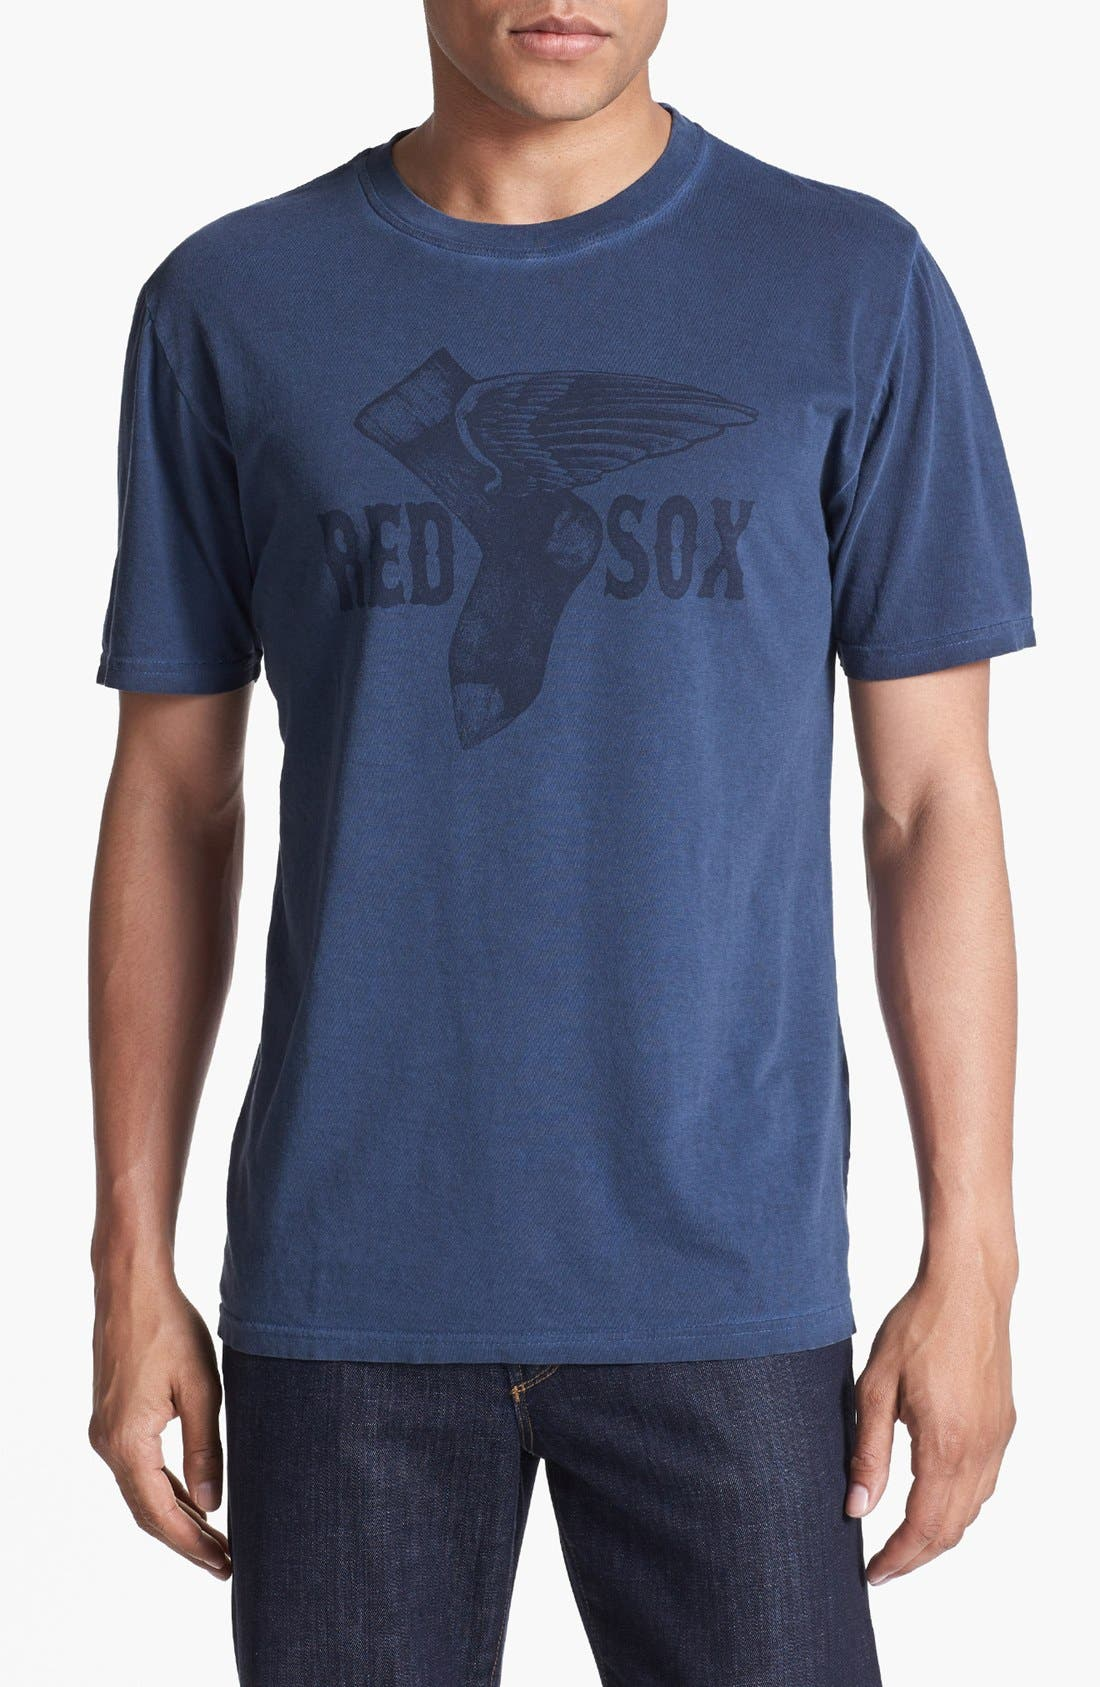 Alternate Image 1 Selected - Red Jacket 'Red Sox - Merit' T-Shirt